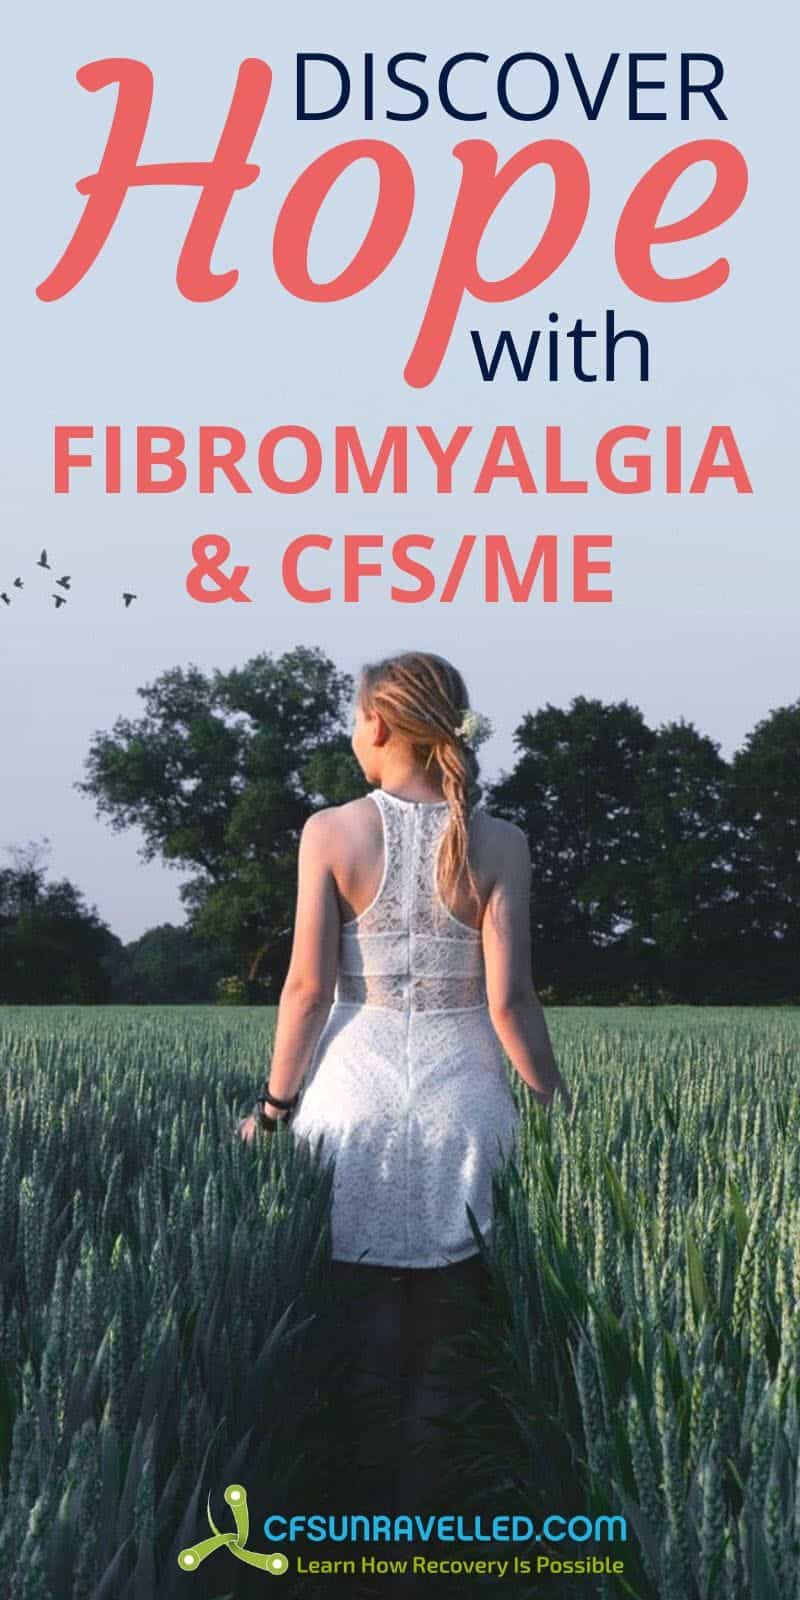 Woman in the middle of field with discover hope with fibromyalgia nd CFSME